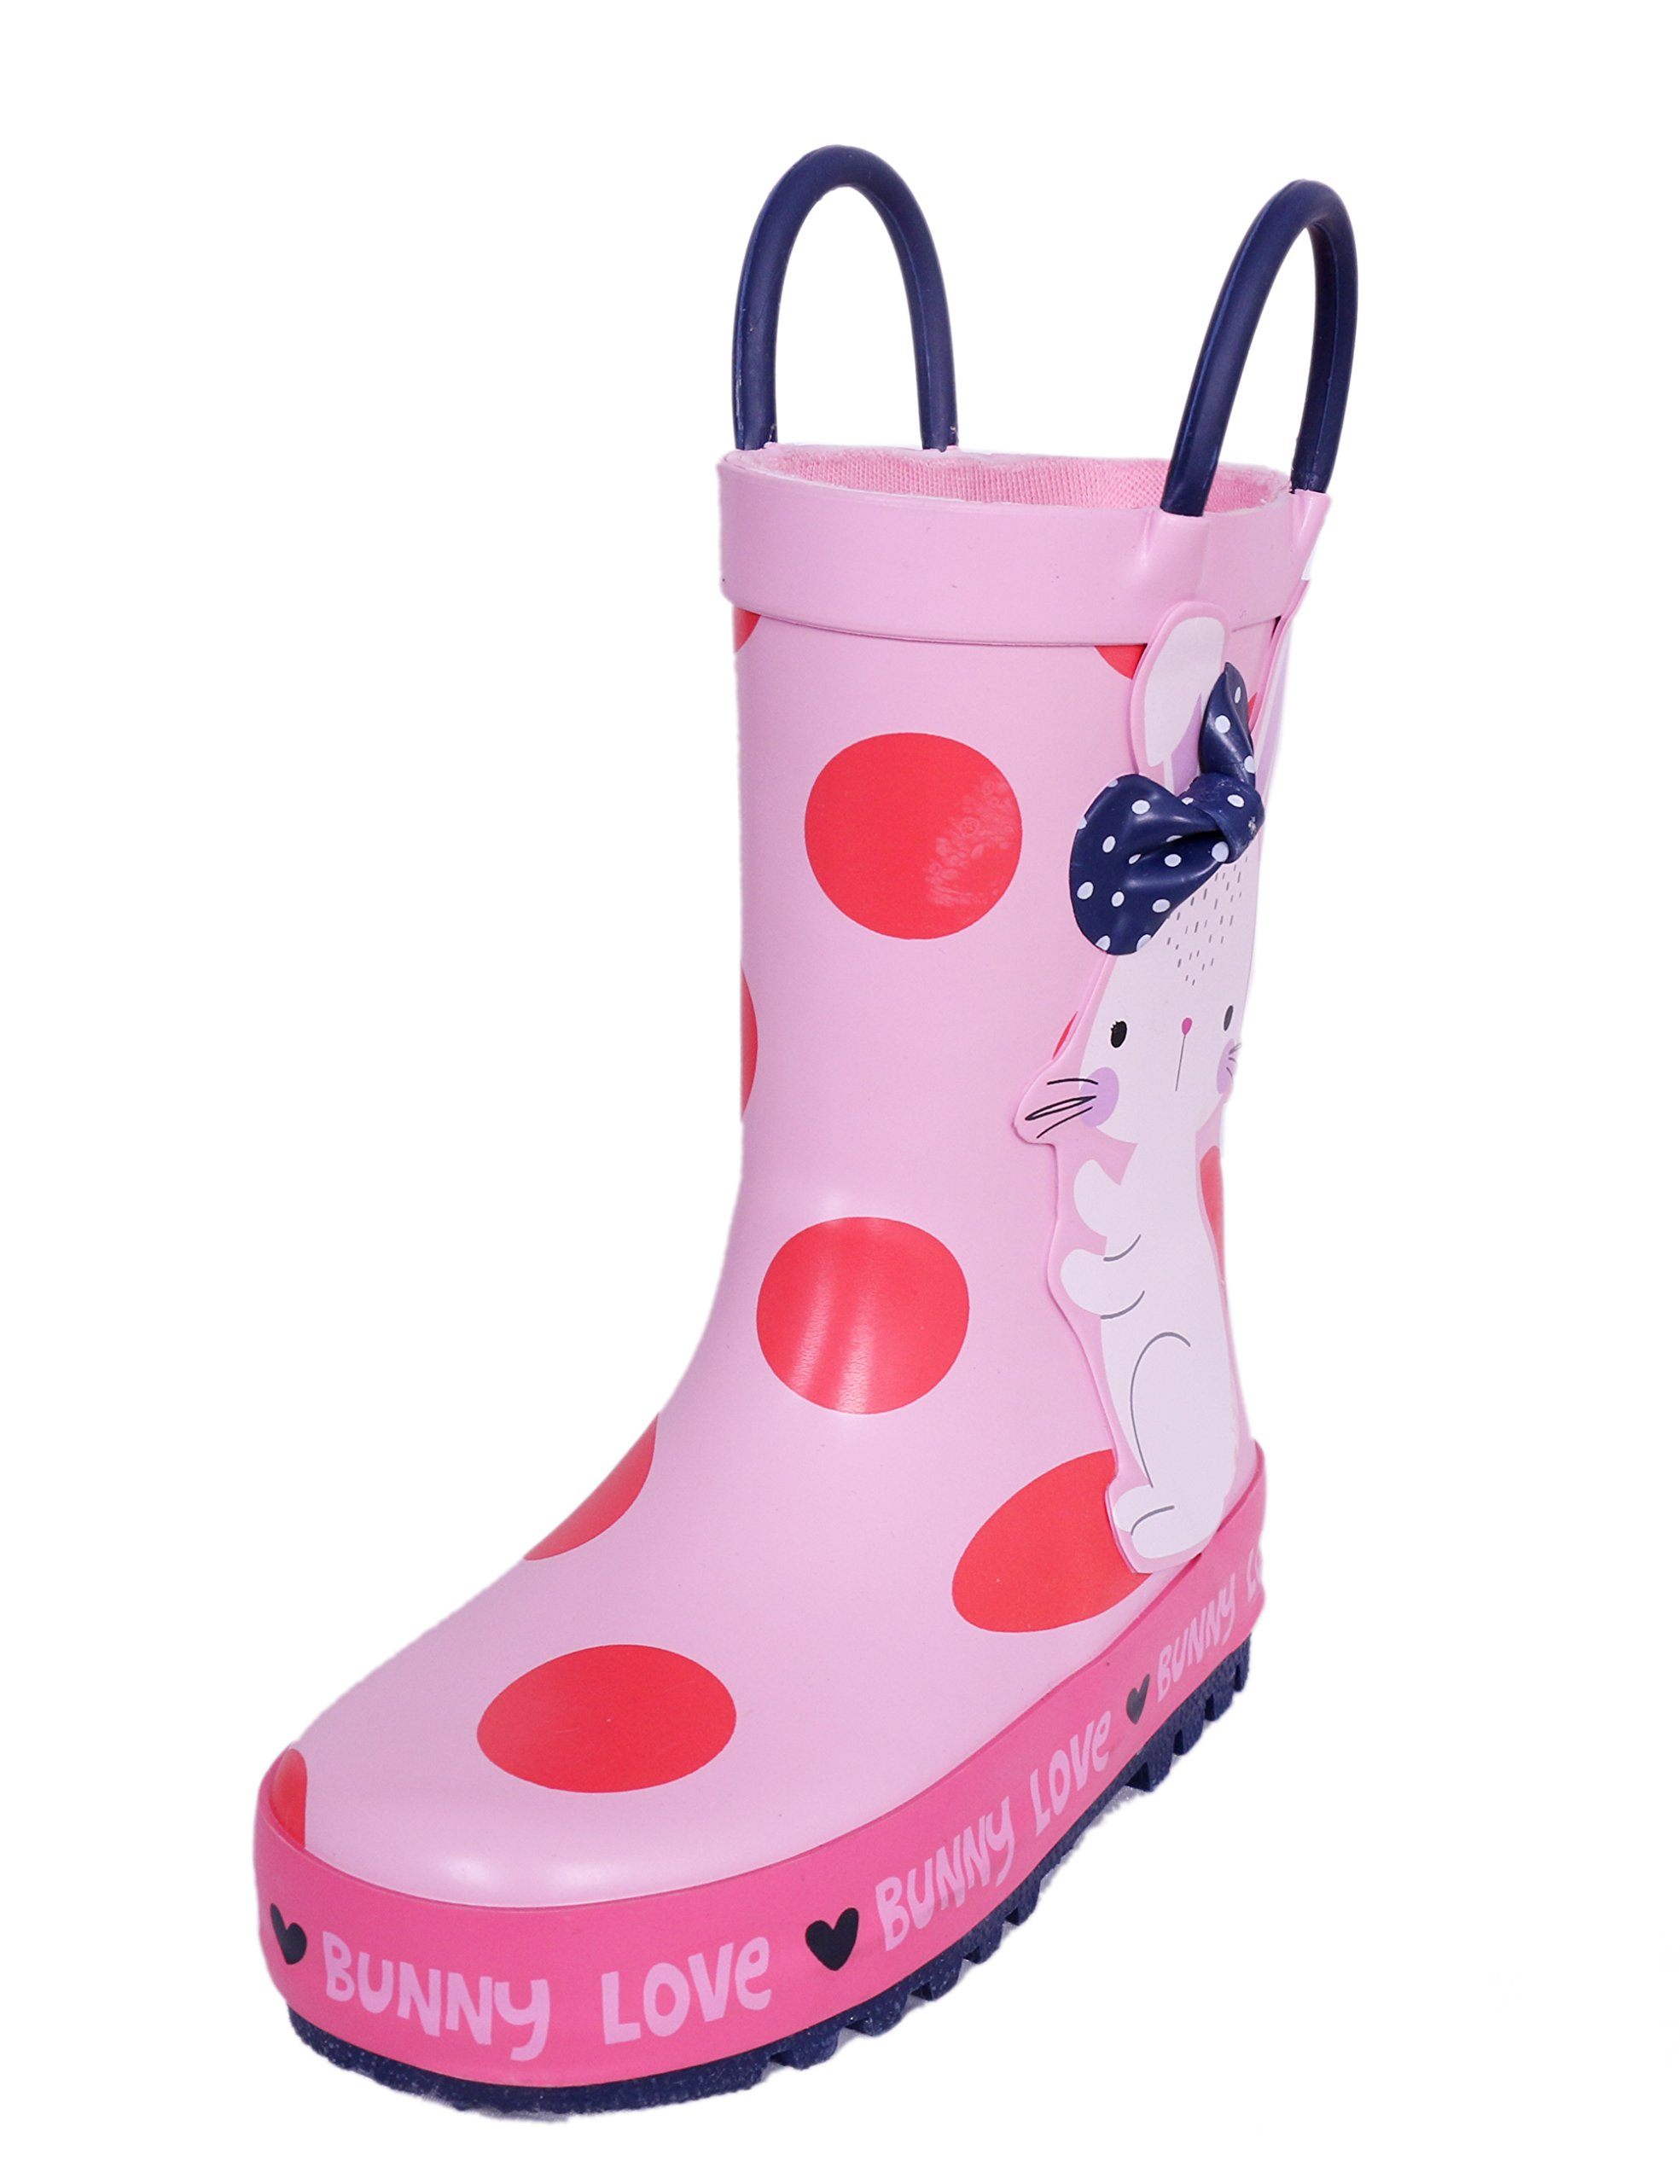 SHOFORT Children's Waterproof Rubber Rain Boots with Built-in Handles for Little Kids Girls, Pink Polka Dot Pattern, Size 11